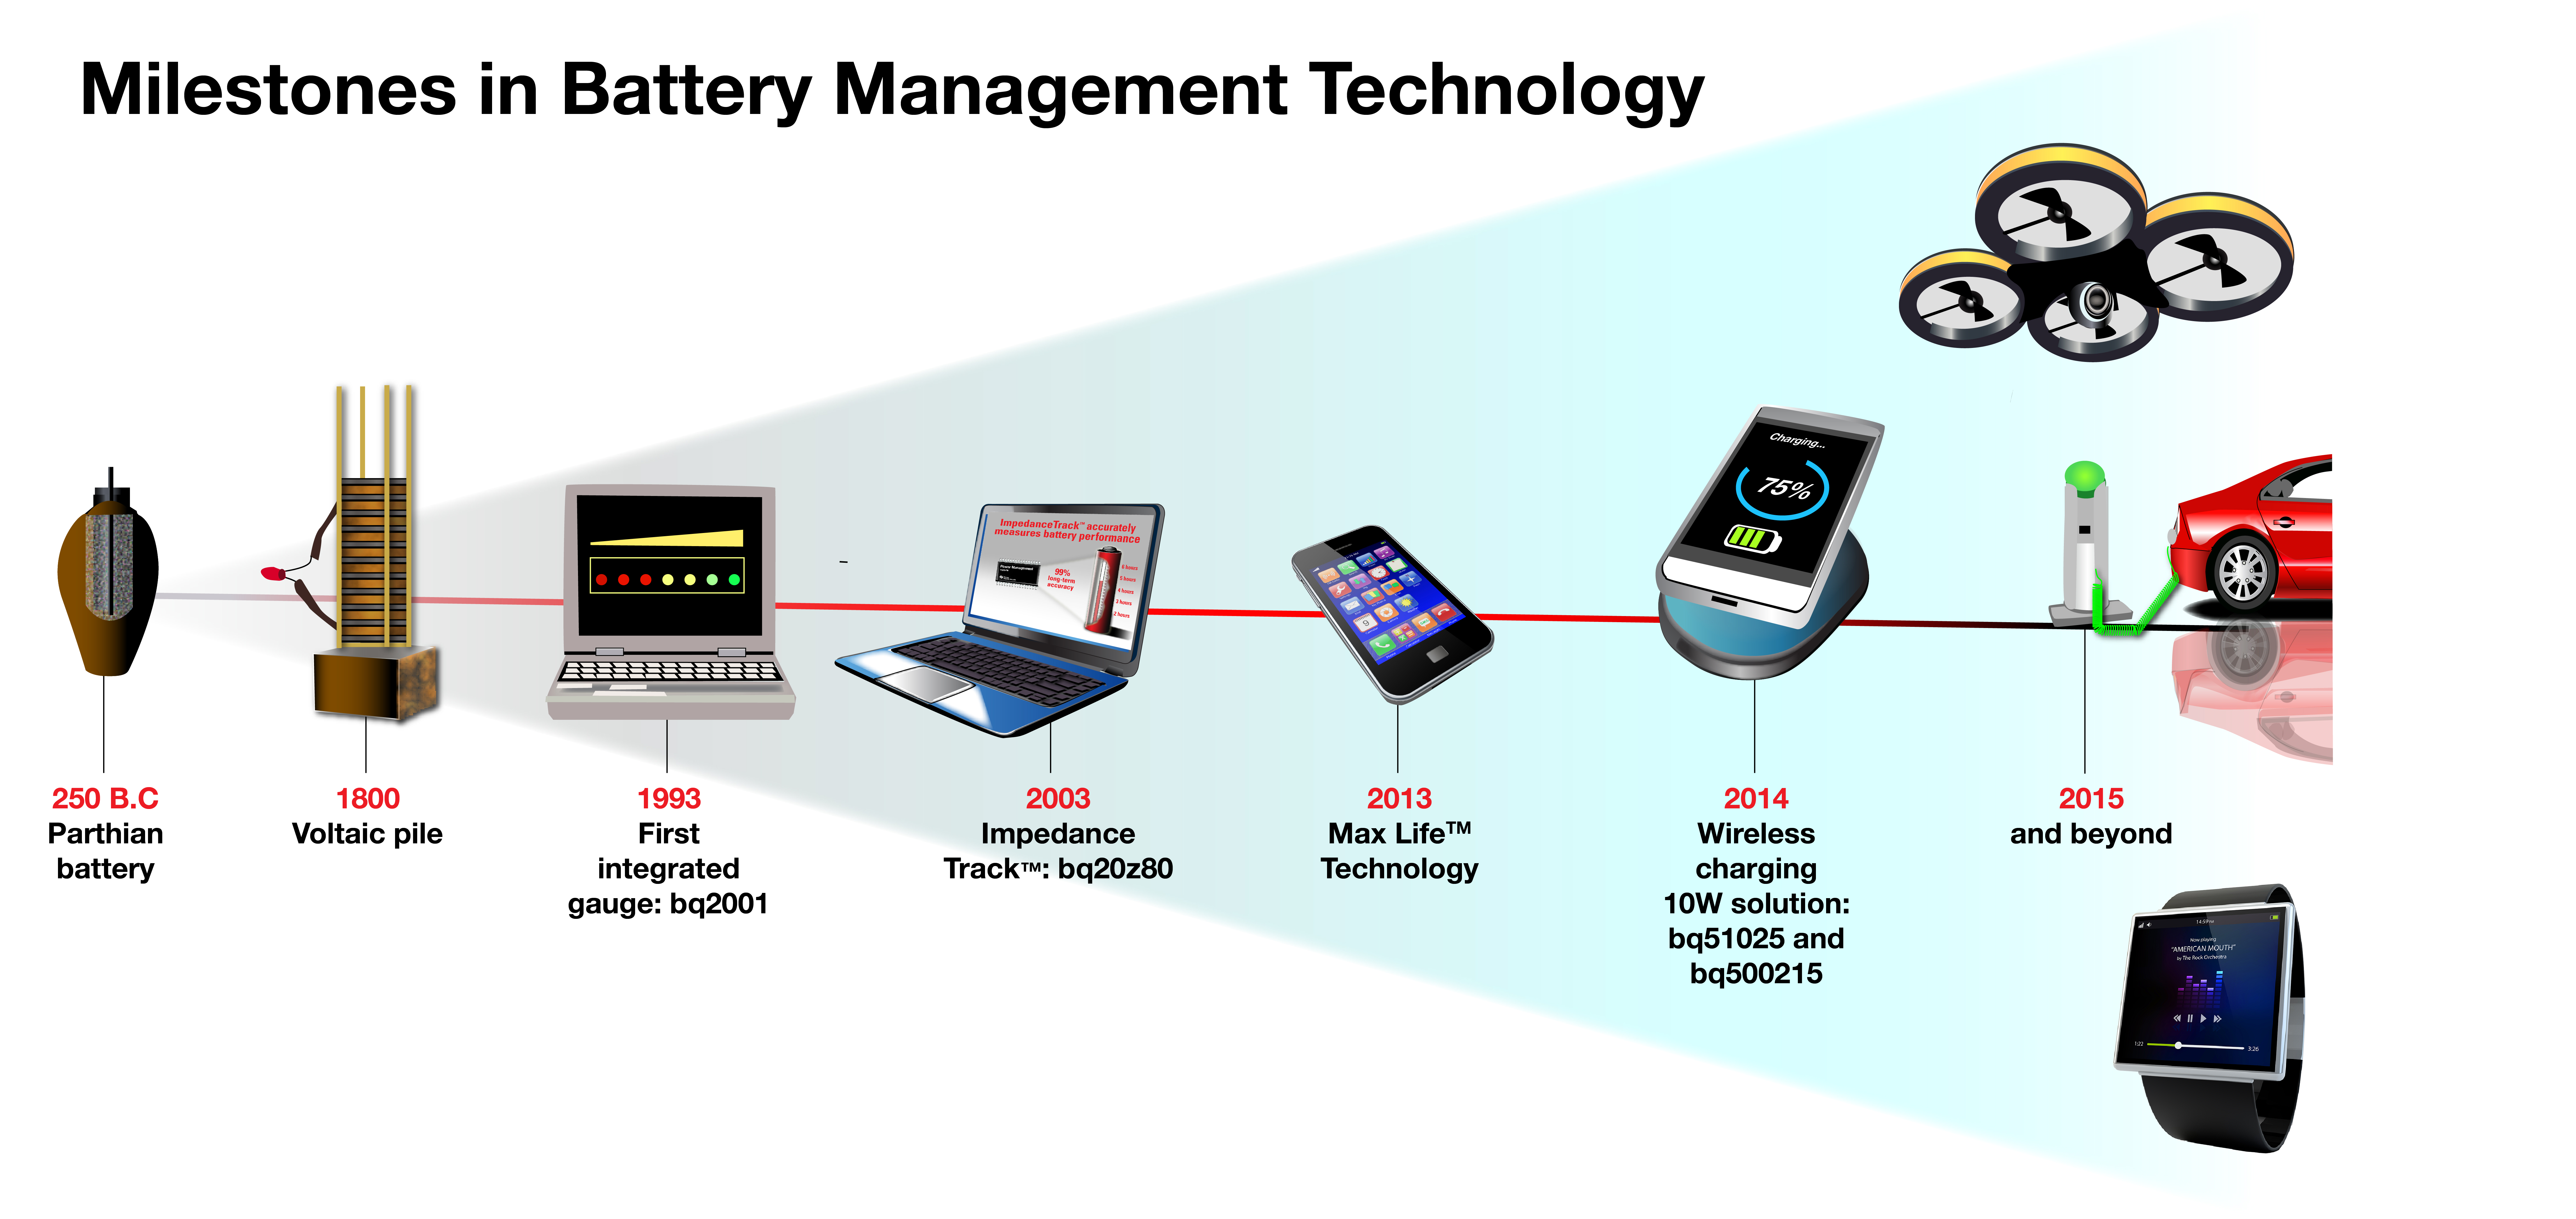 Technology Management Image: Battery Management Technology...How Far We've Come In Just